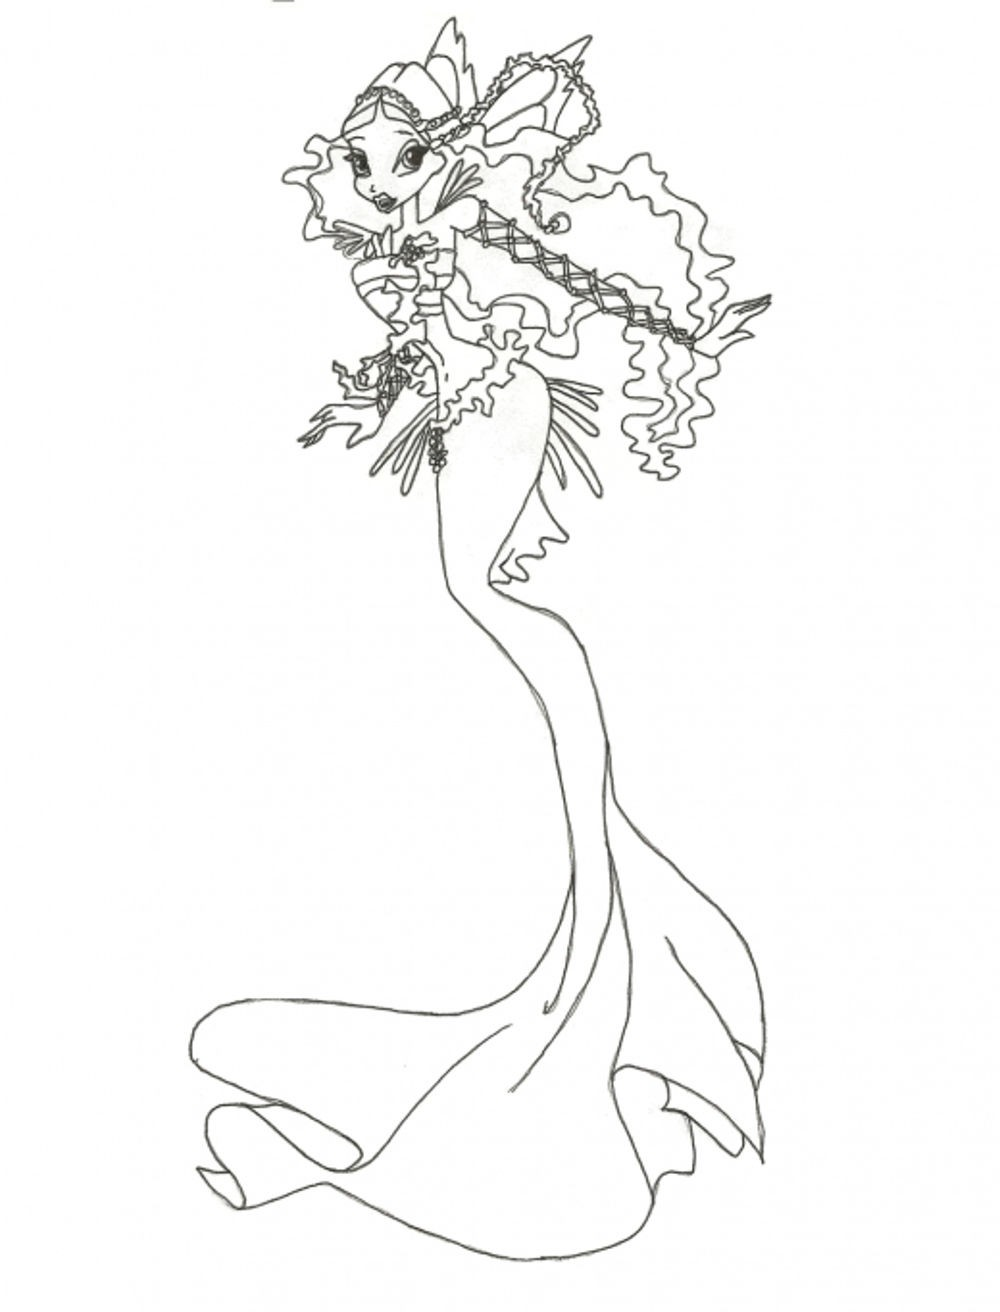 shop related products - Barbie Mermaid Coloring Pages